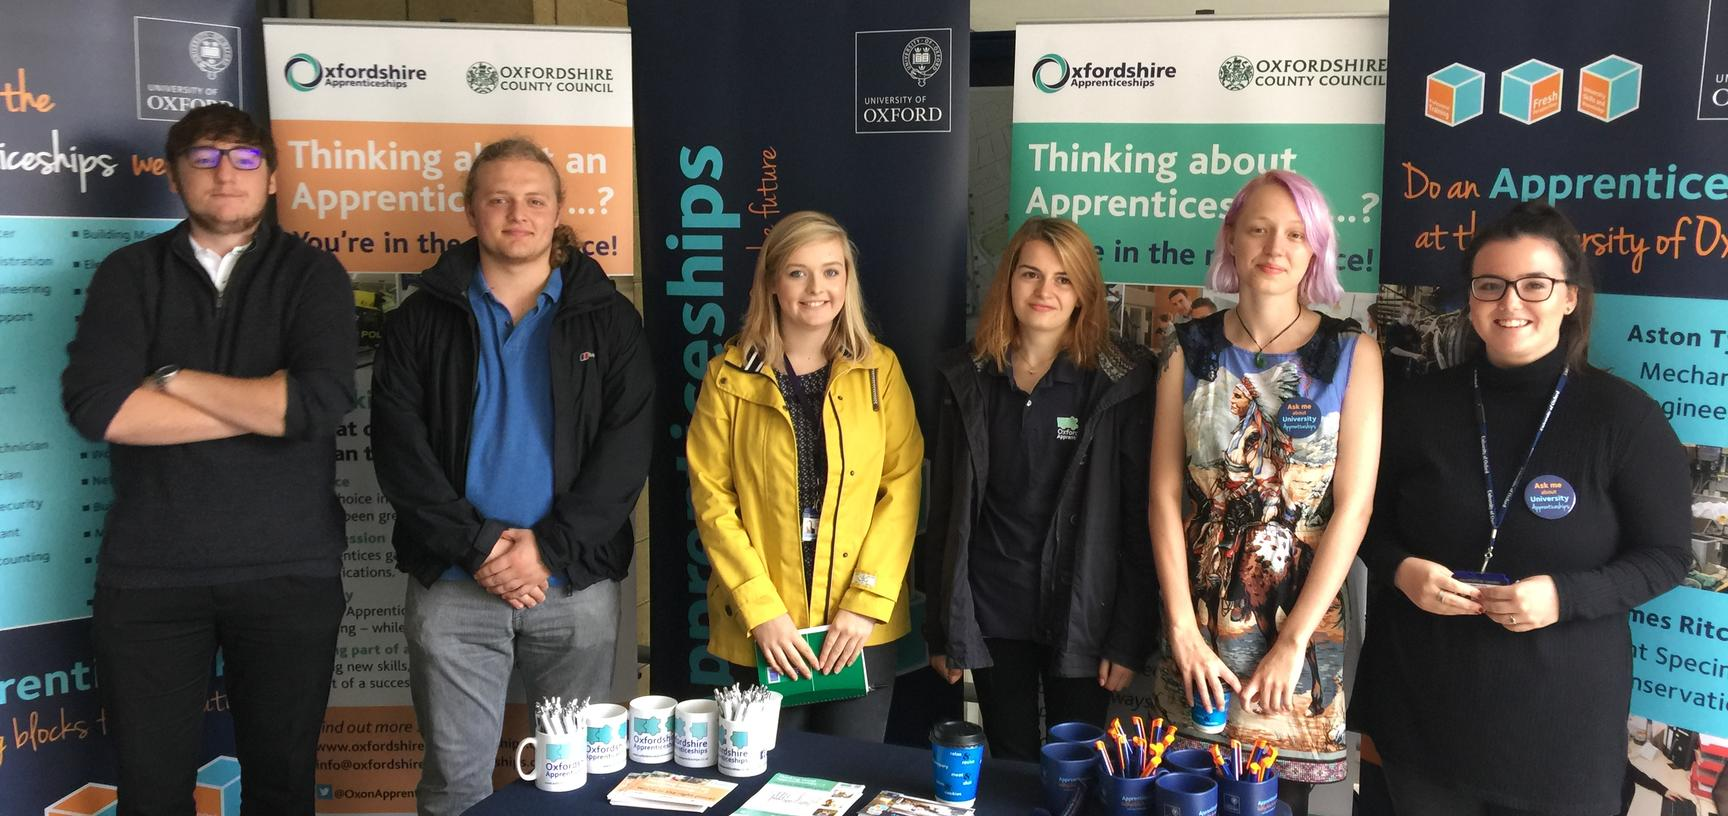 A mixed group of University of Oxford Apprentices at a careers fair talking about Oxfordshire Apprenticeships